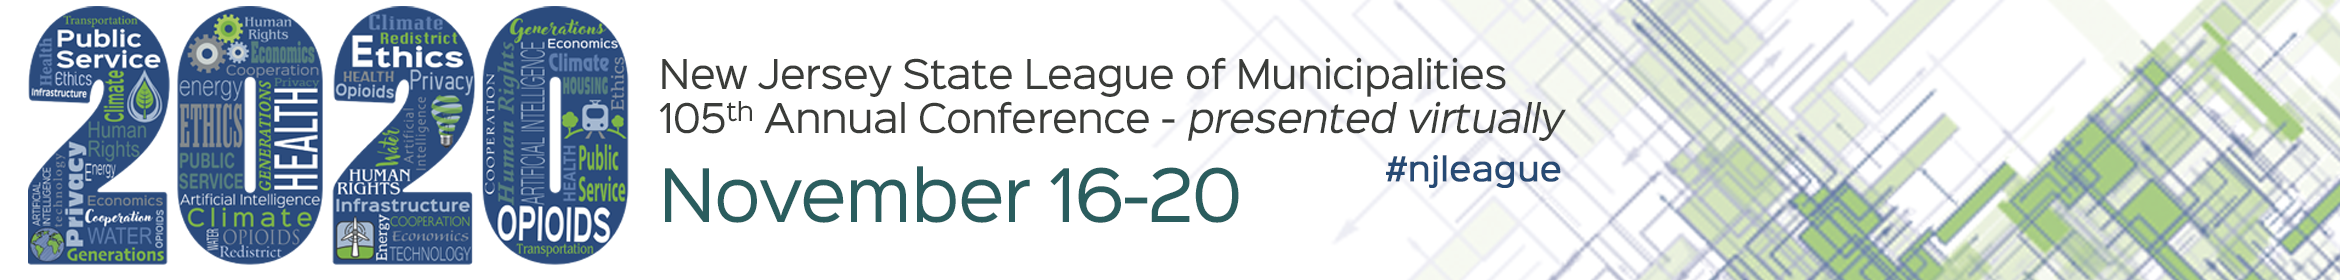 NJ State League of Municipalities Annual Conference Main banner